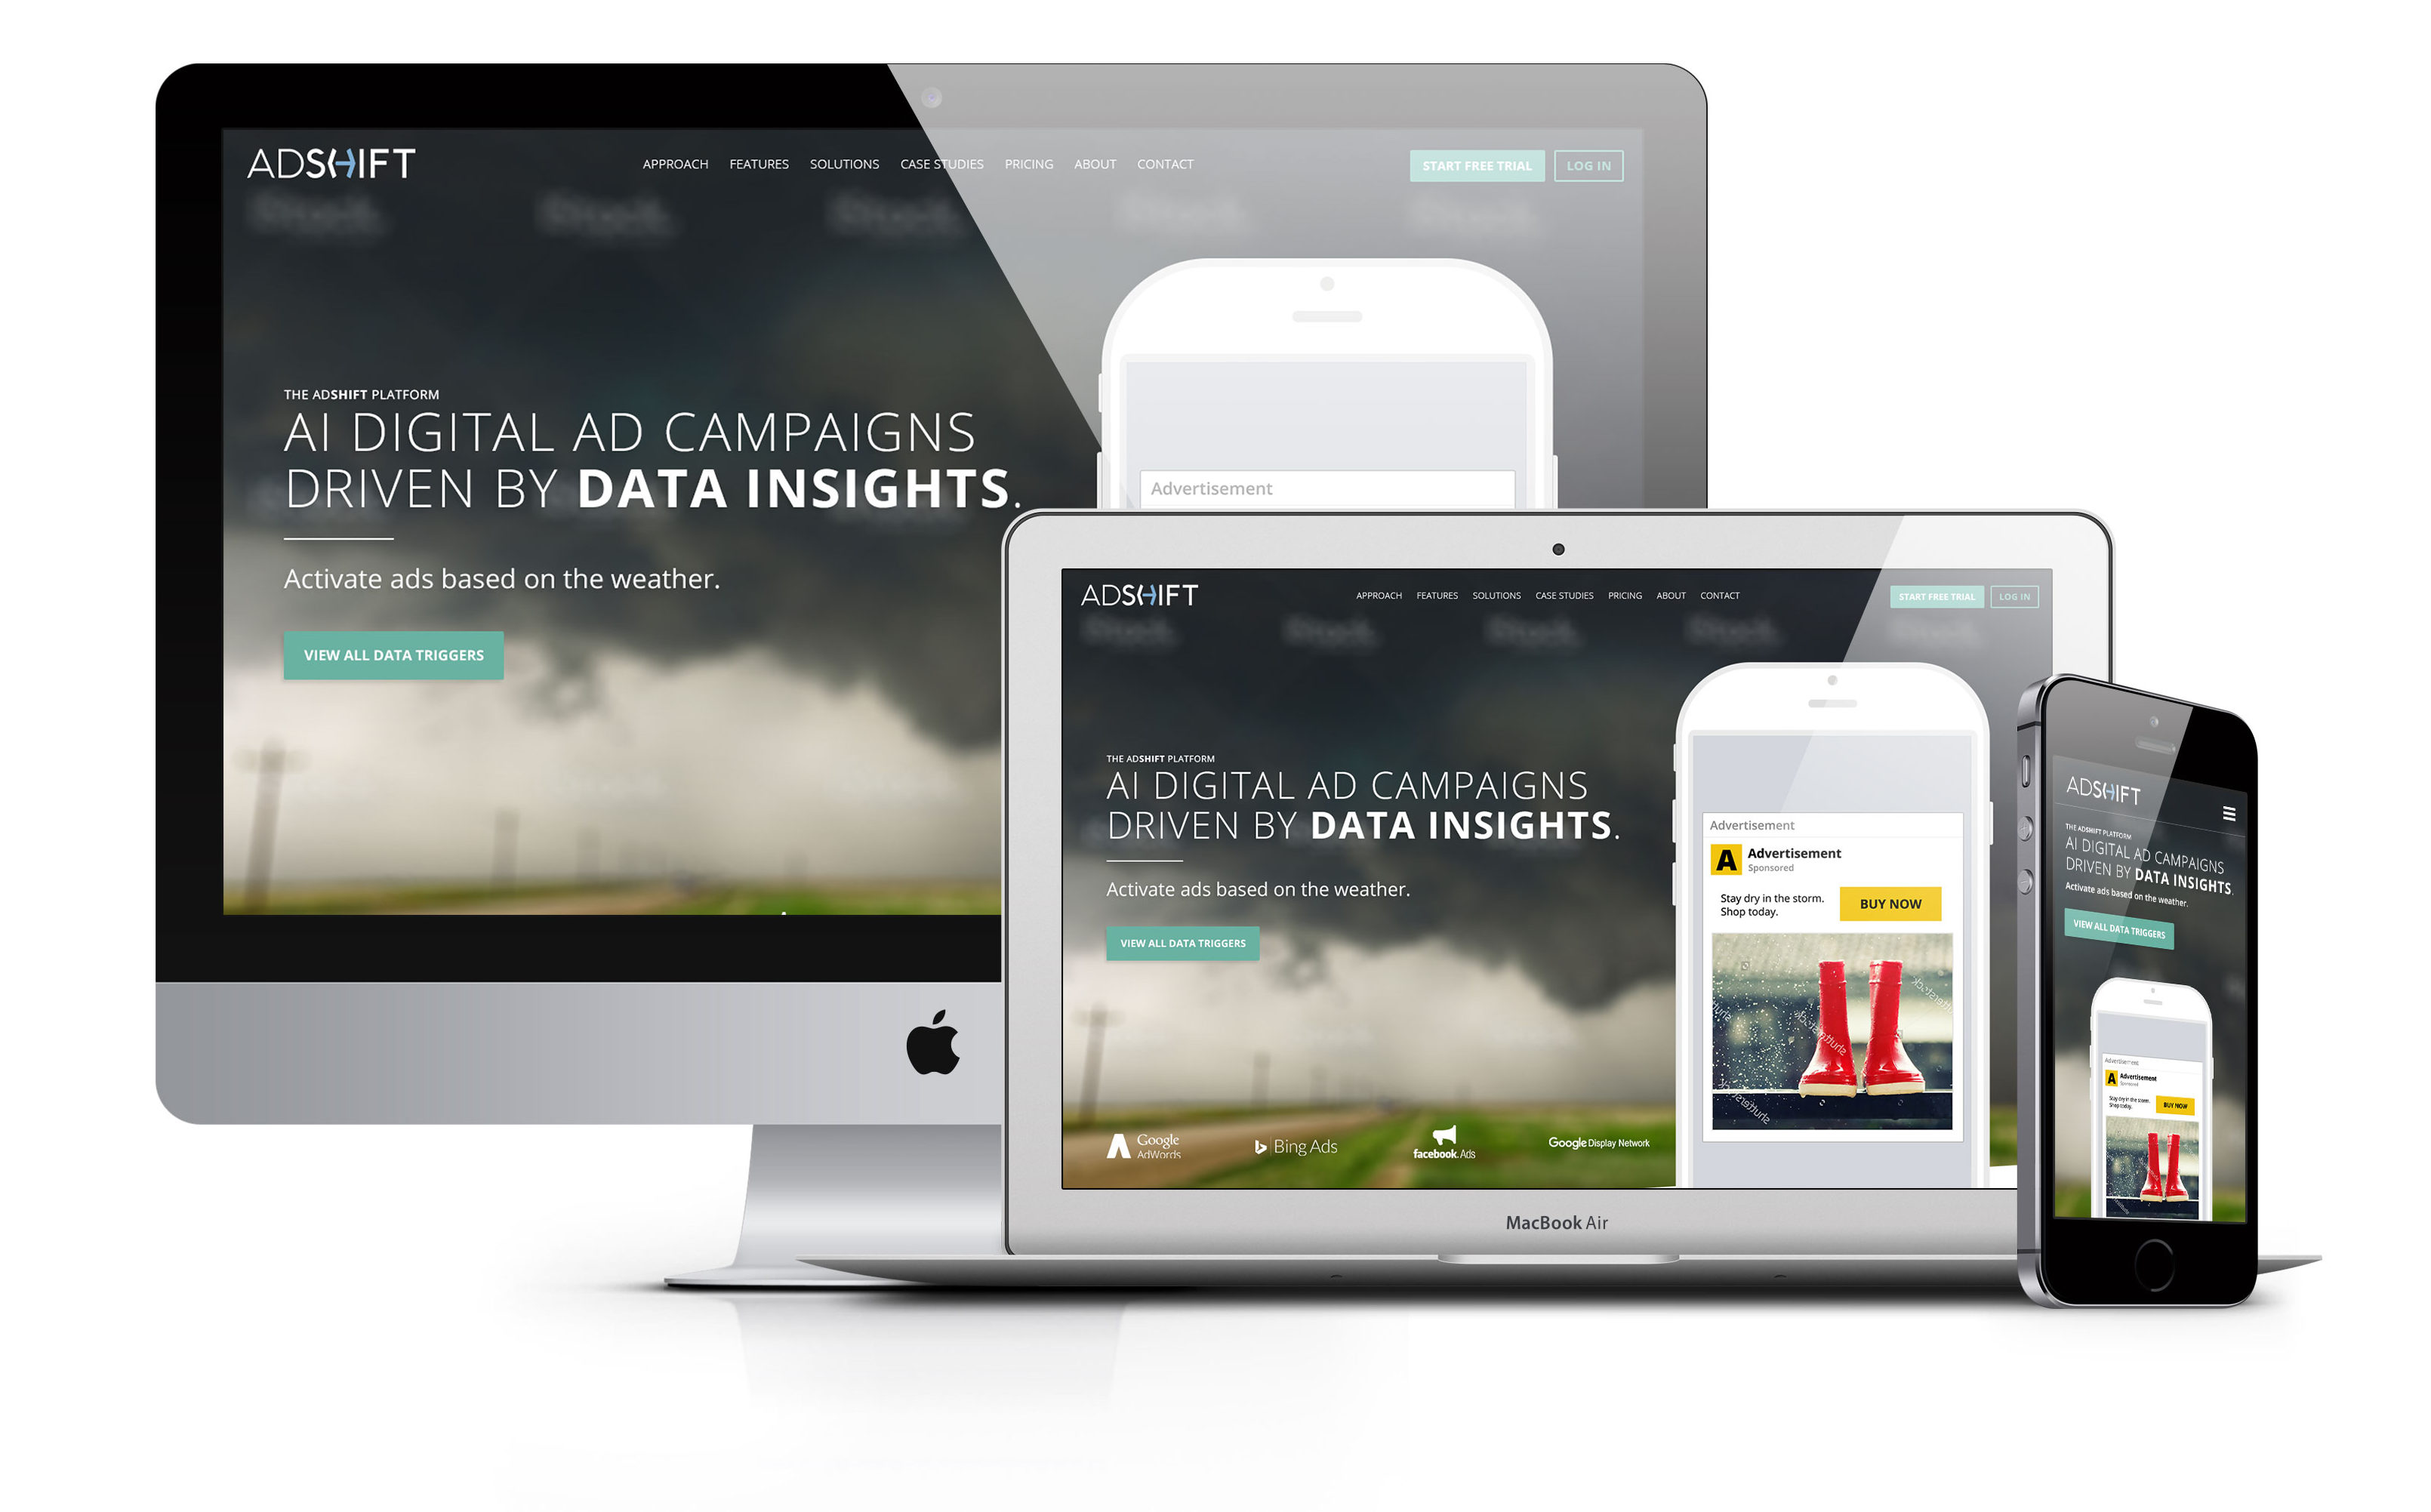 King Design Adshift Responsive Website On Multiple Devices